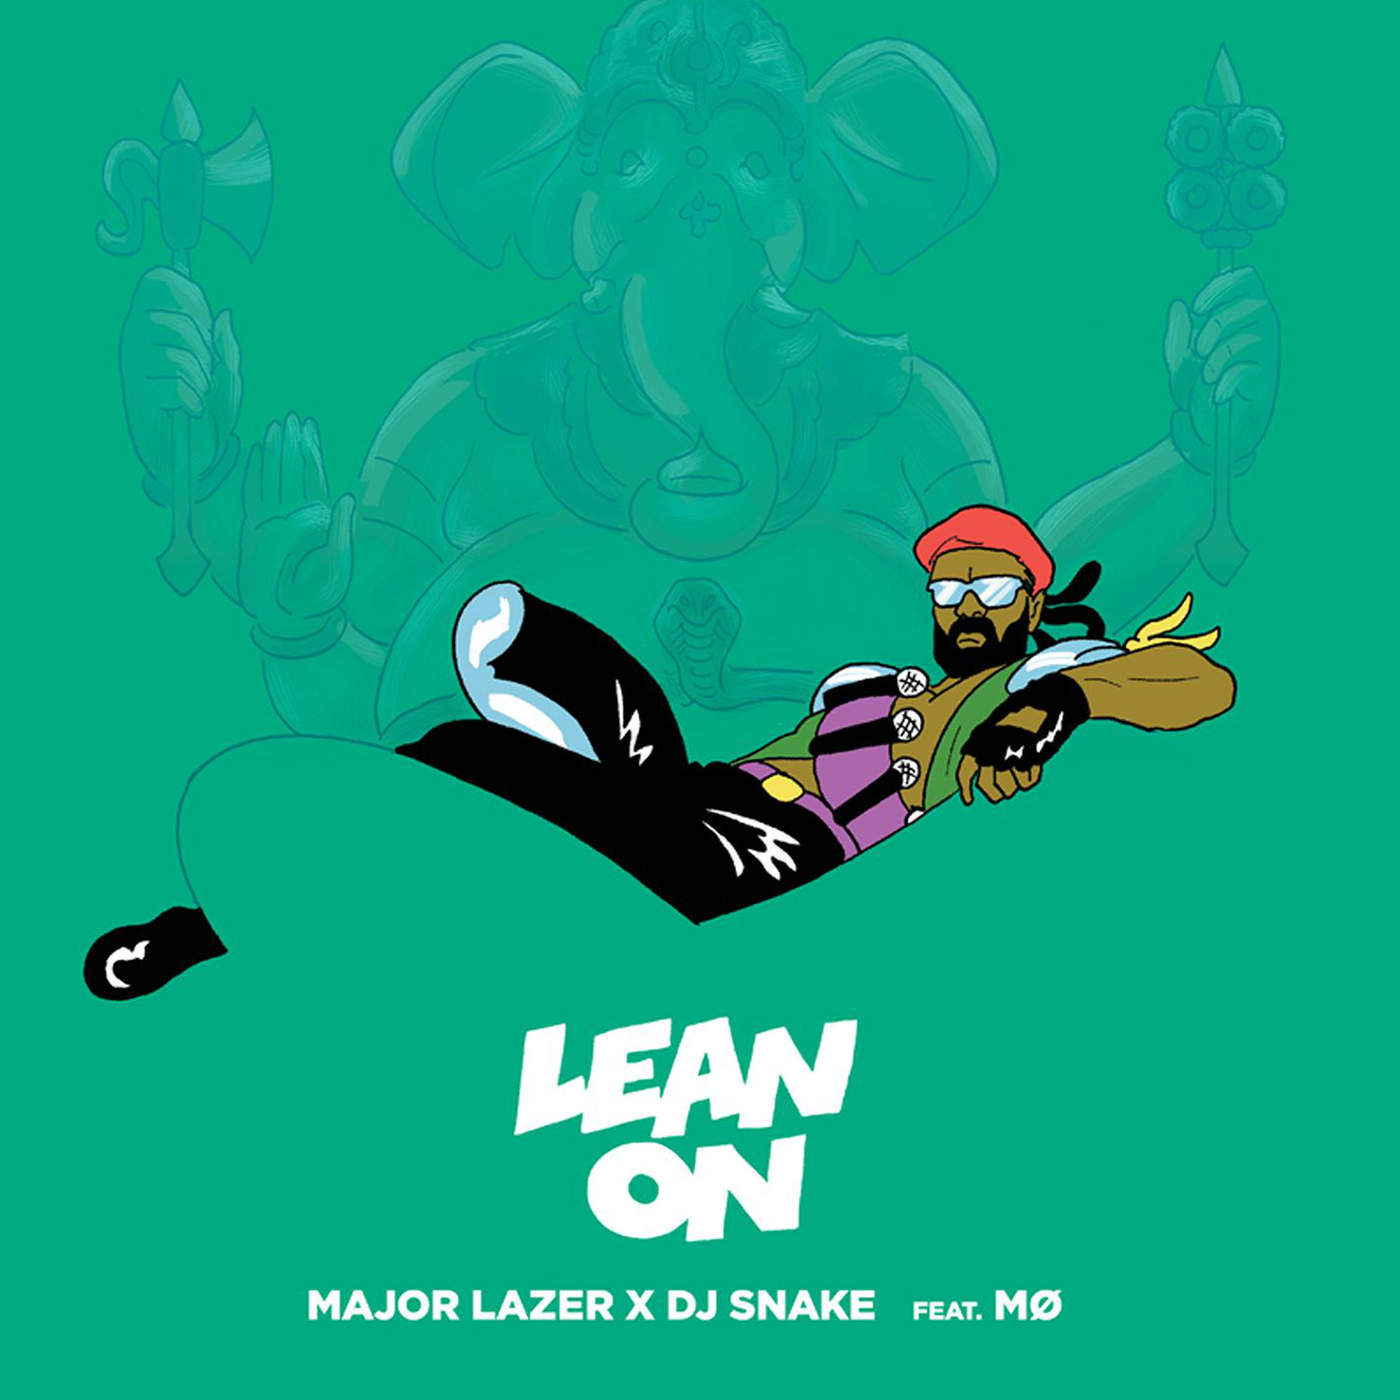 Major Lazer and DJ Snake hit India for new music video for 'Lean On'Leanon